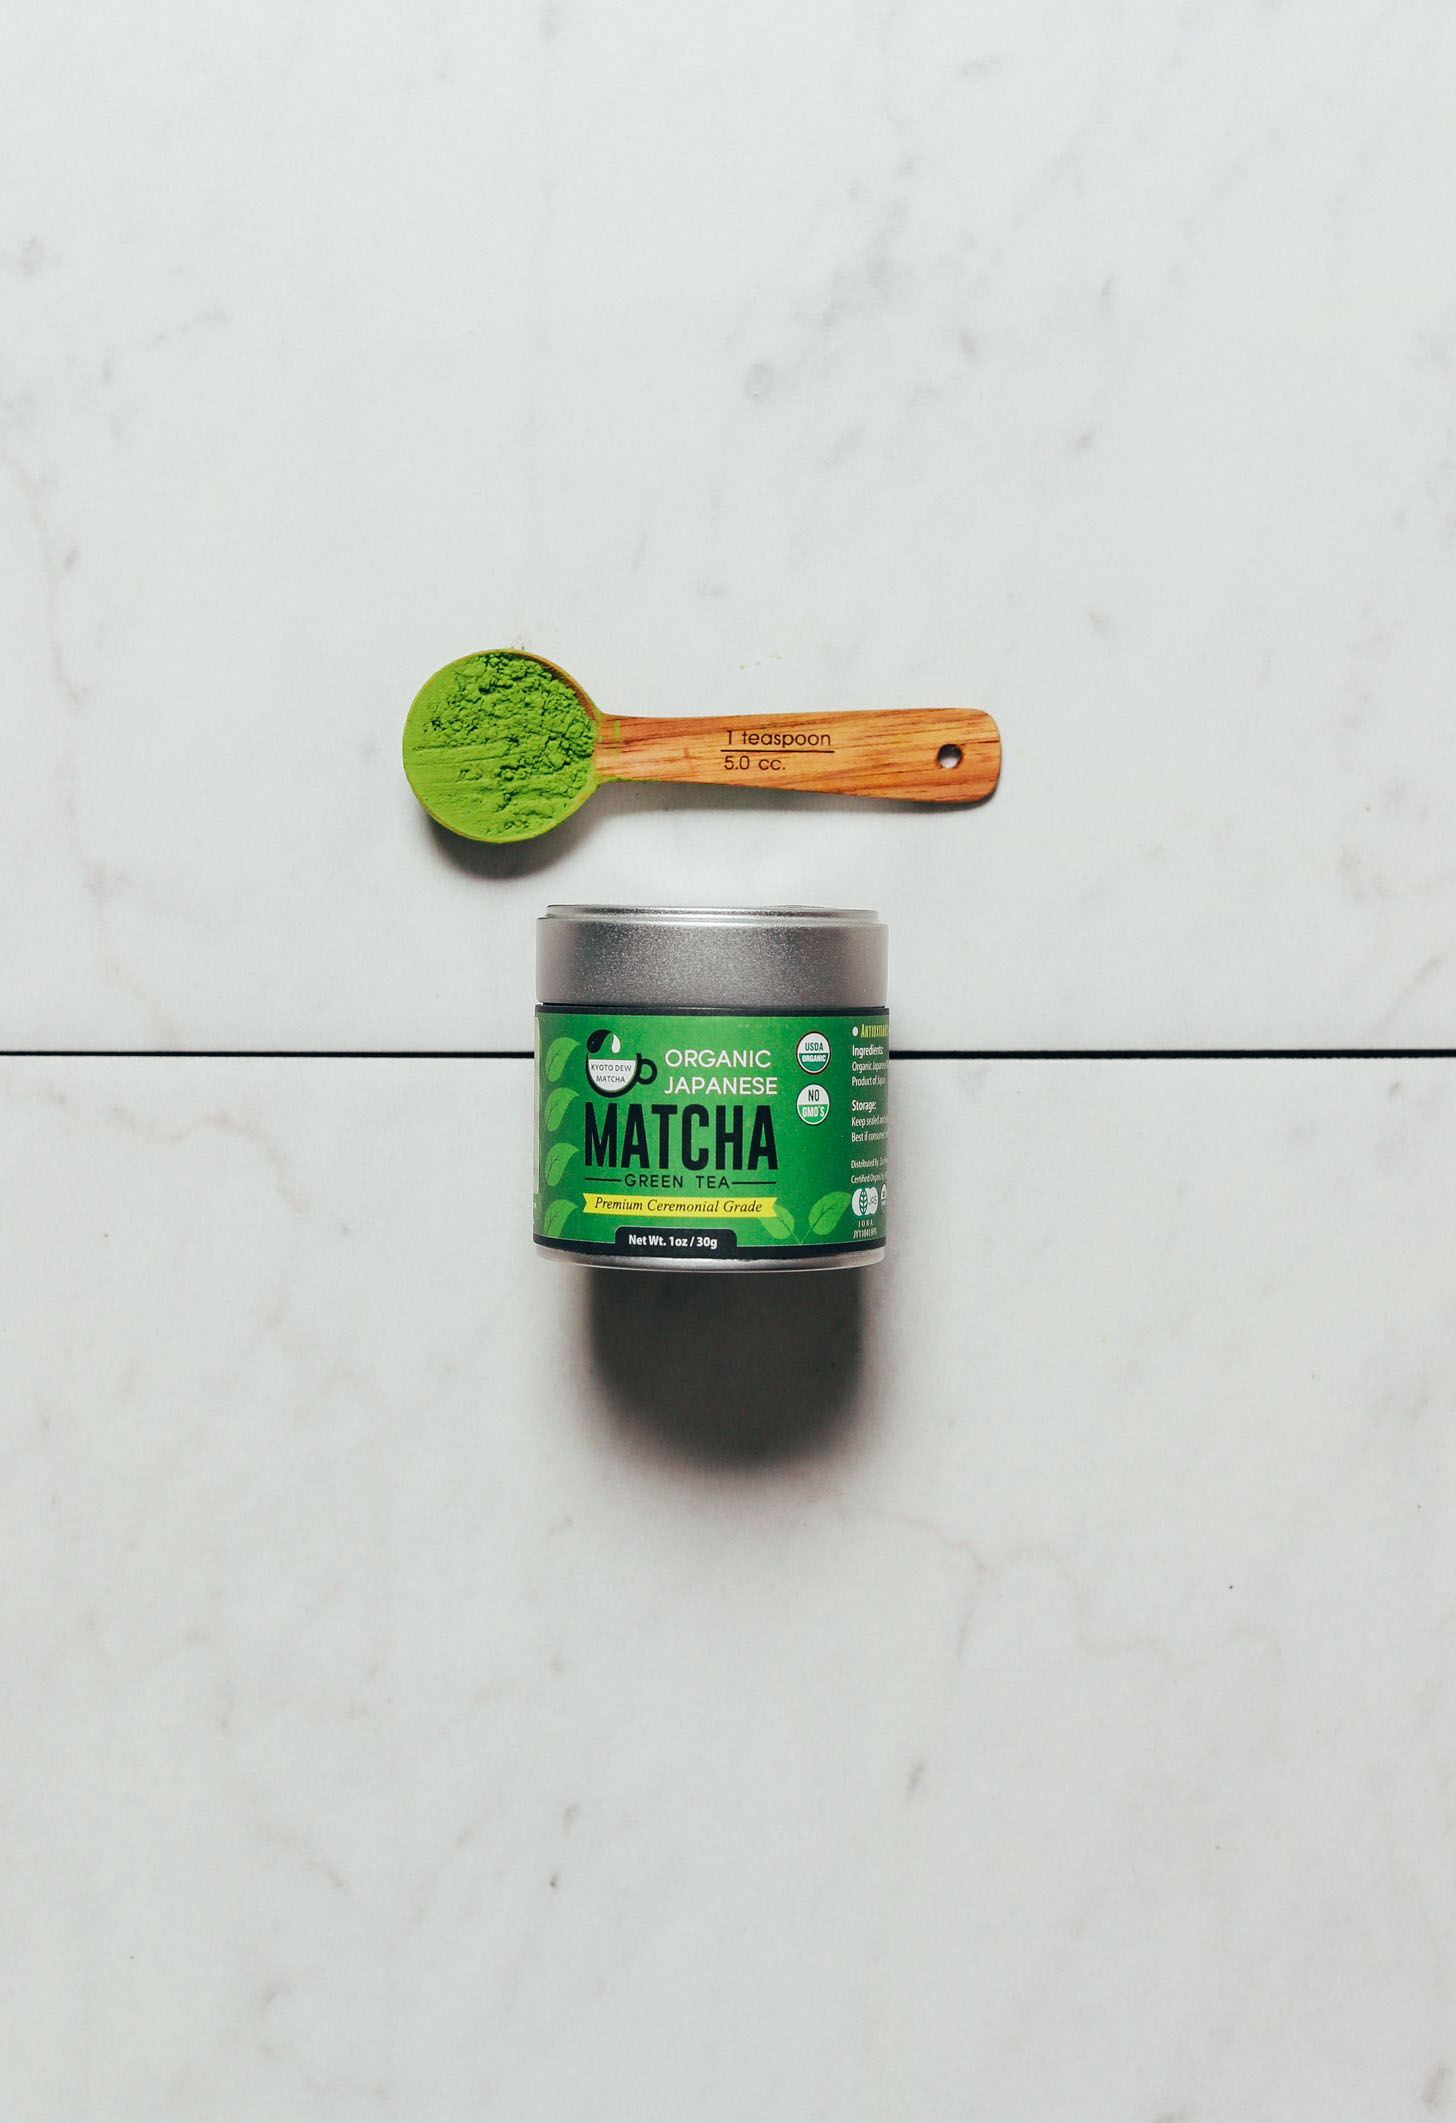 Spoonful and jar of our favorite ceremonial matcha brand